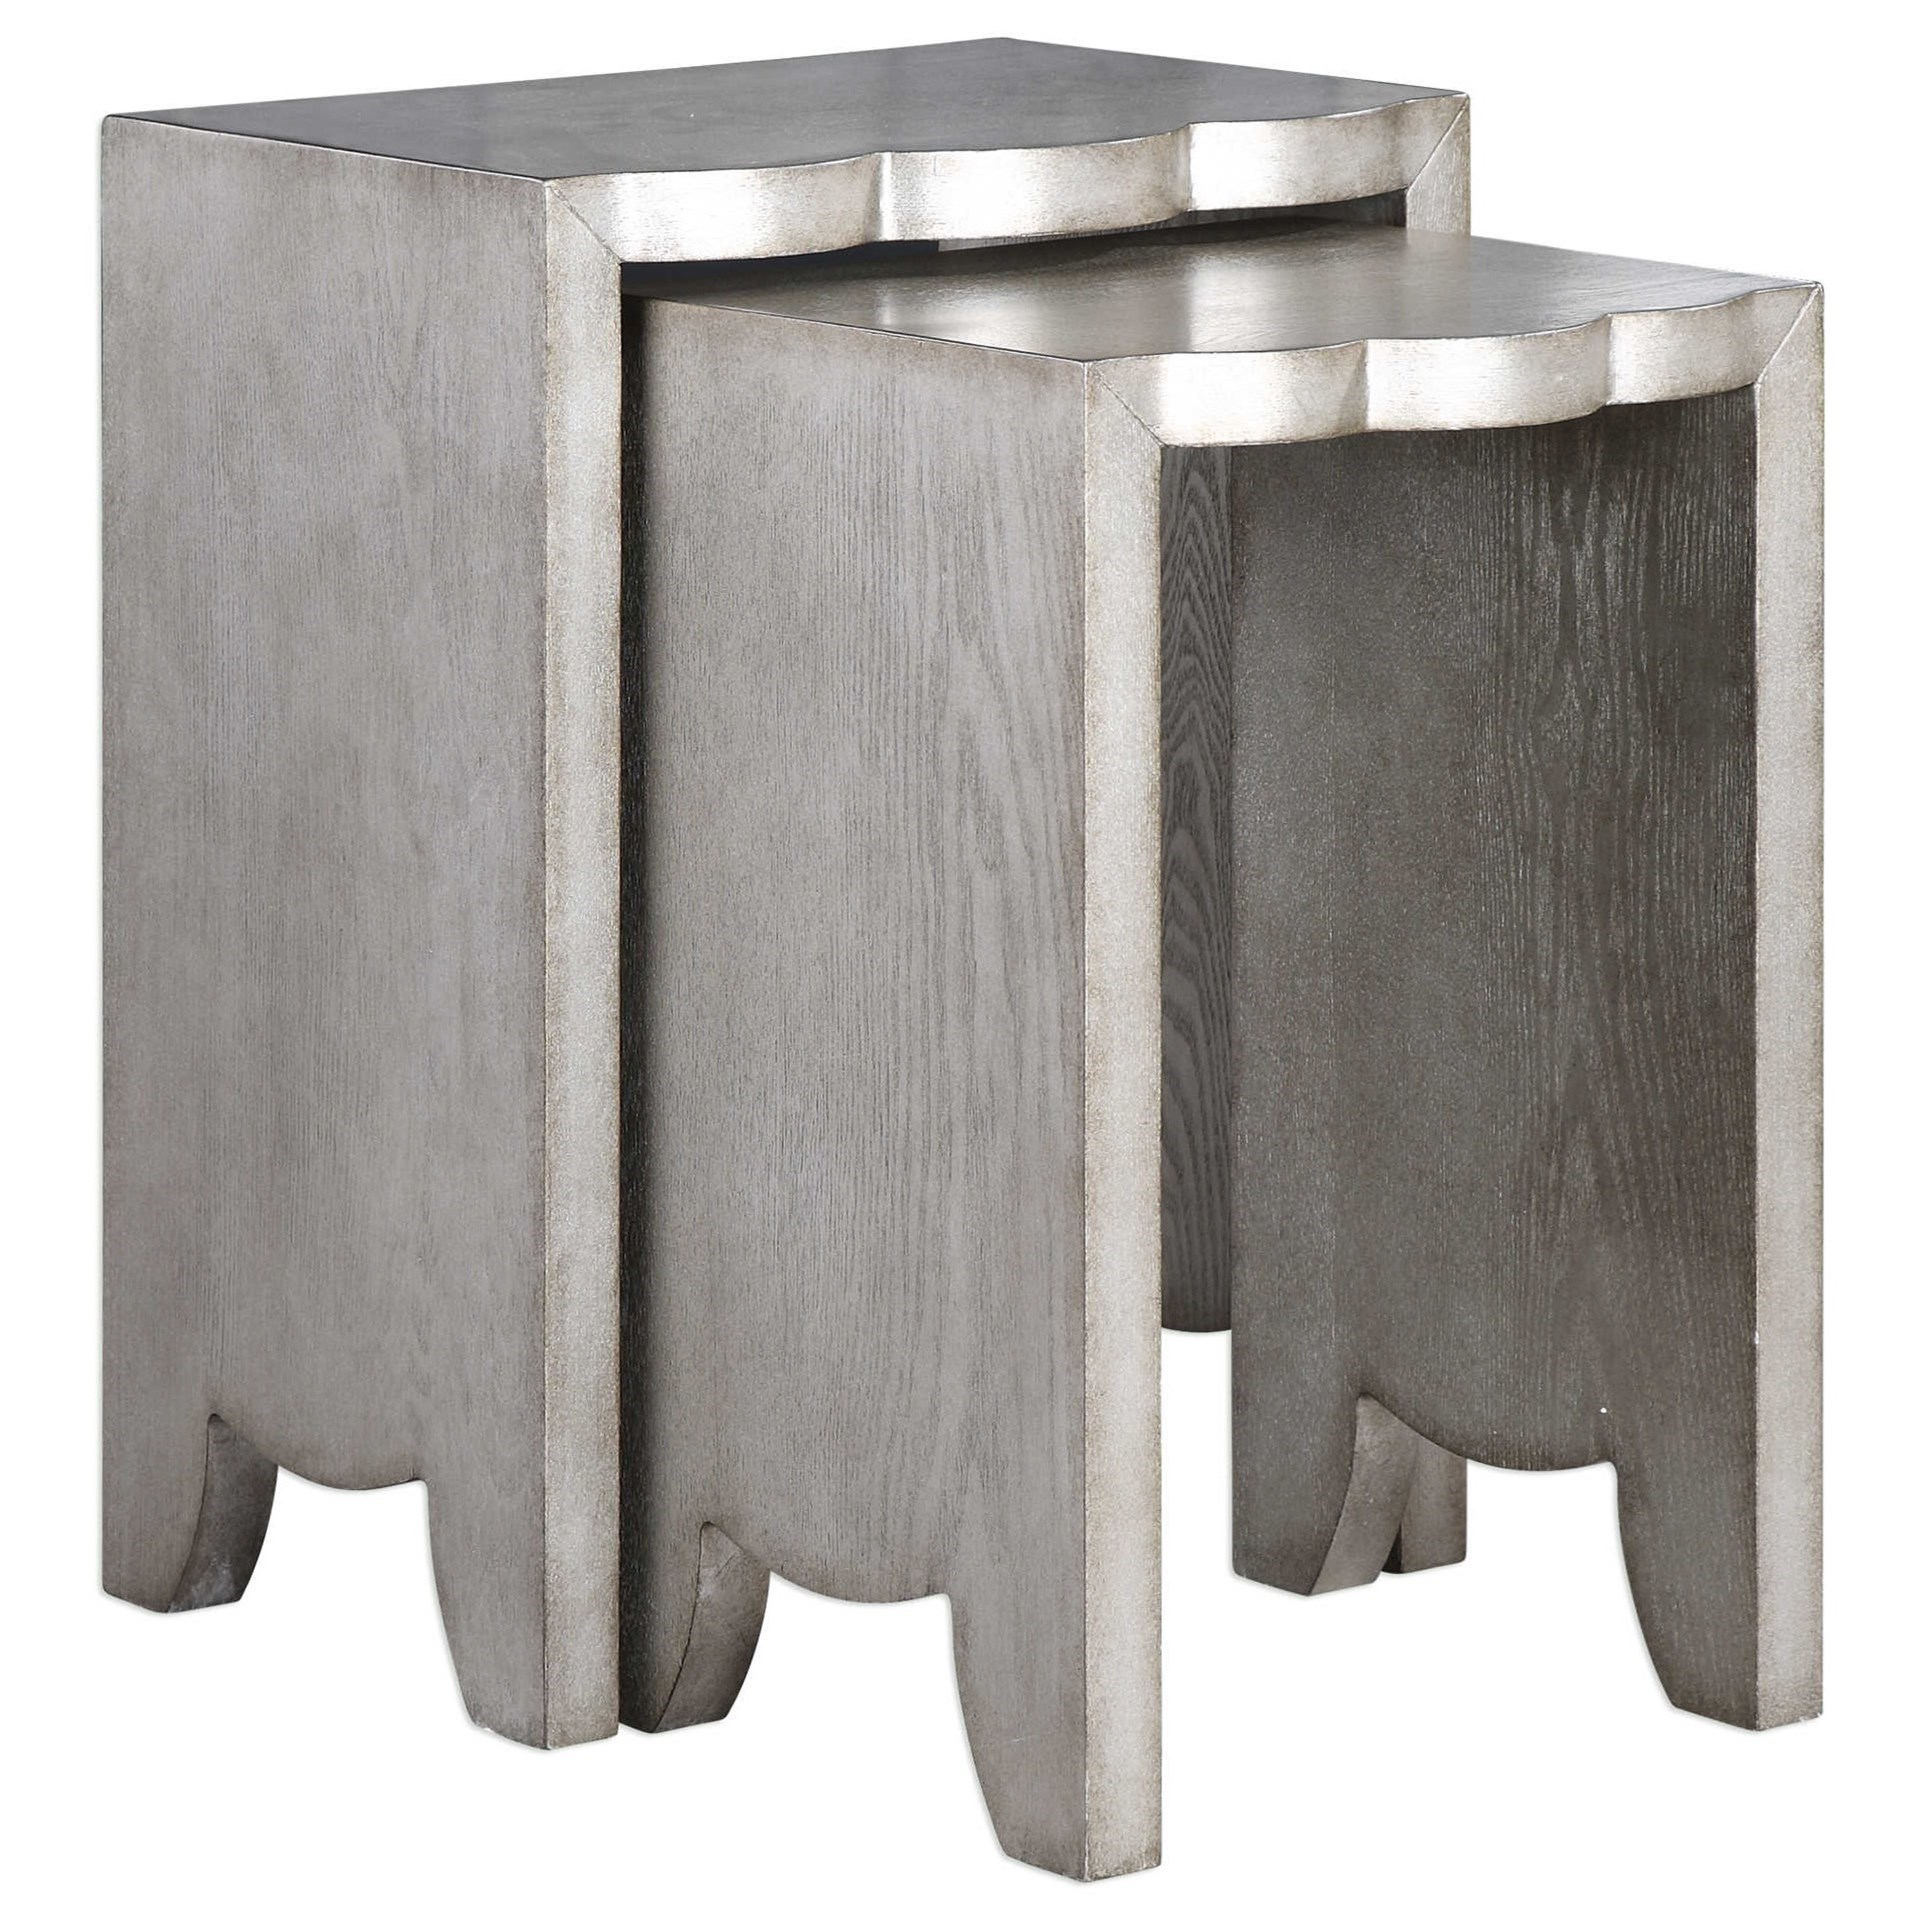 Accent Furniture - Occasional Tables Imala Natural Ash Nesting Tables (Set of 2) by Uttermost at Upper Room Home Furnishings